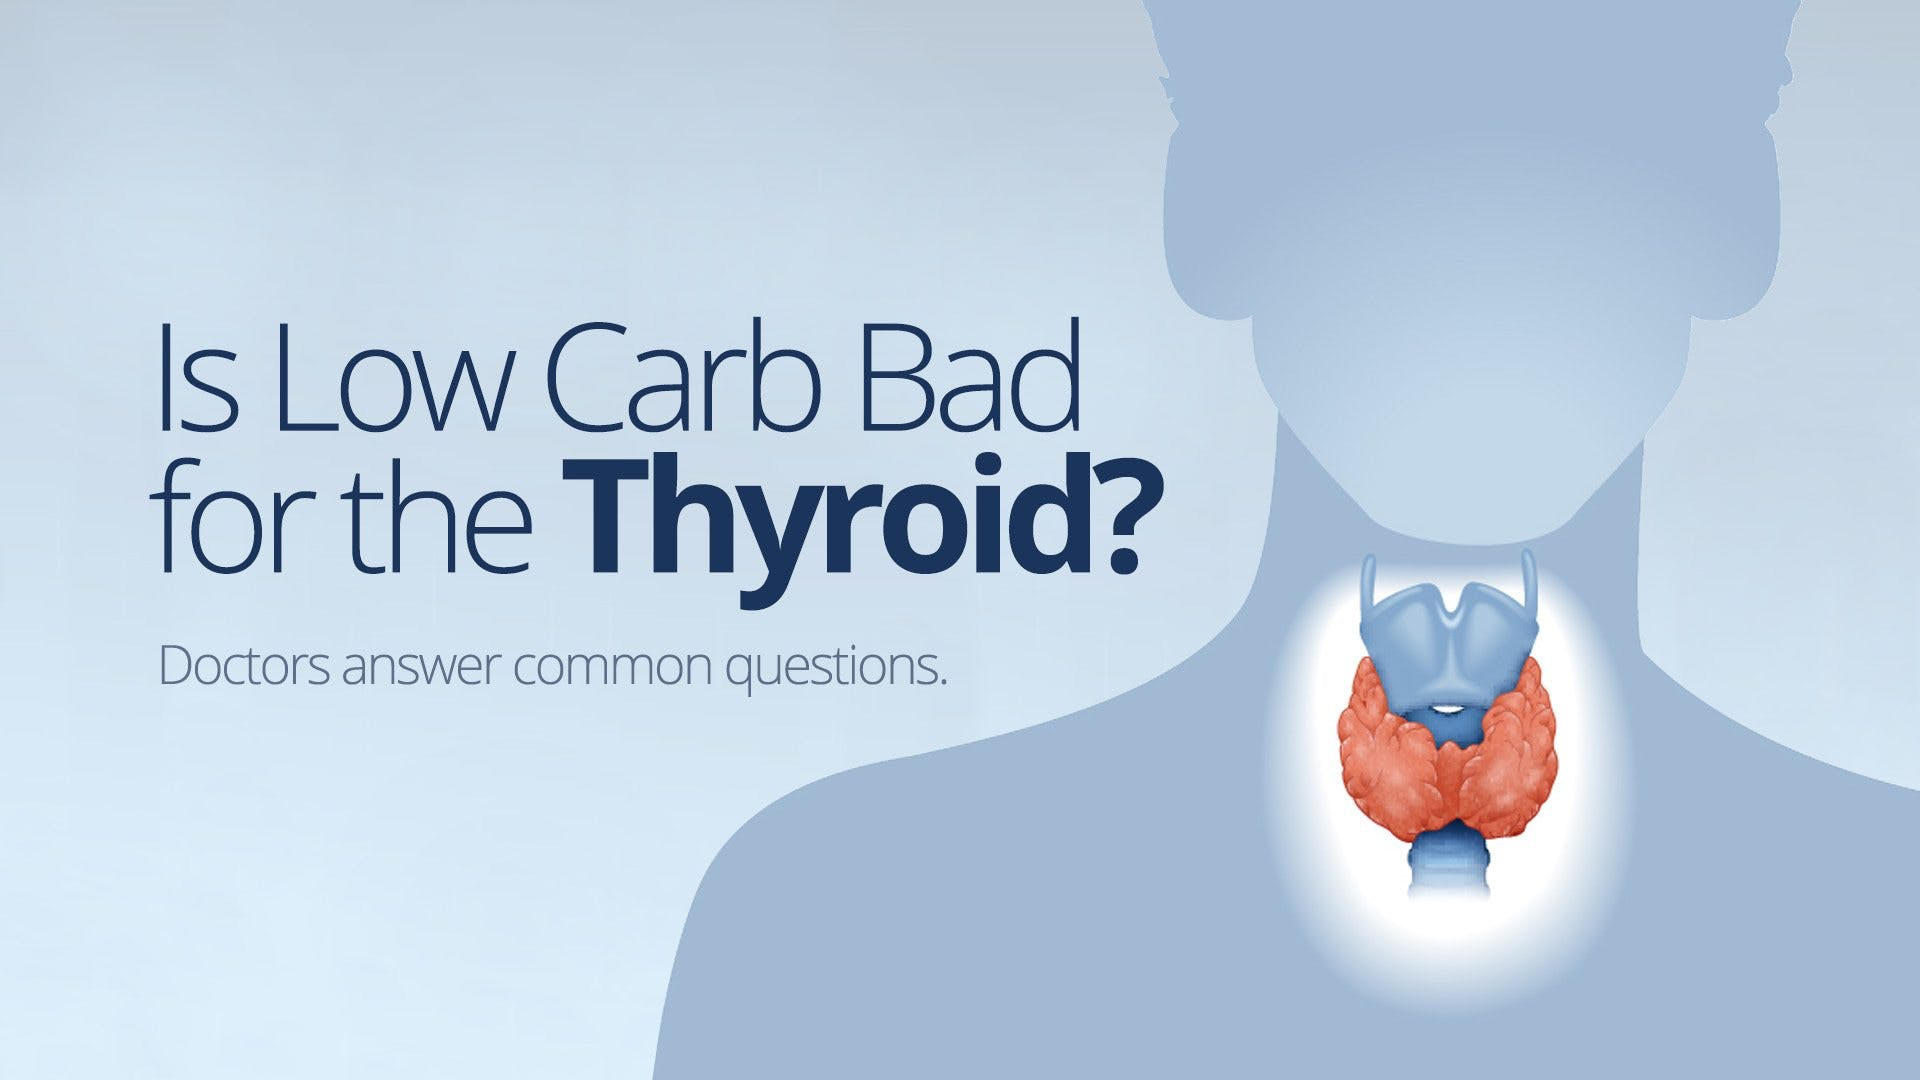 Is low carb bad for the thyroid?